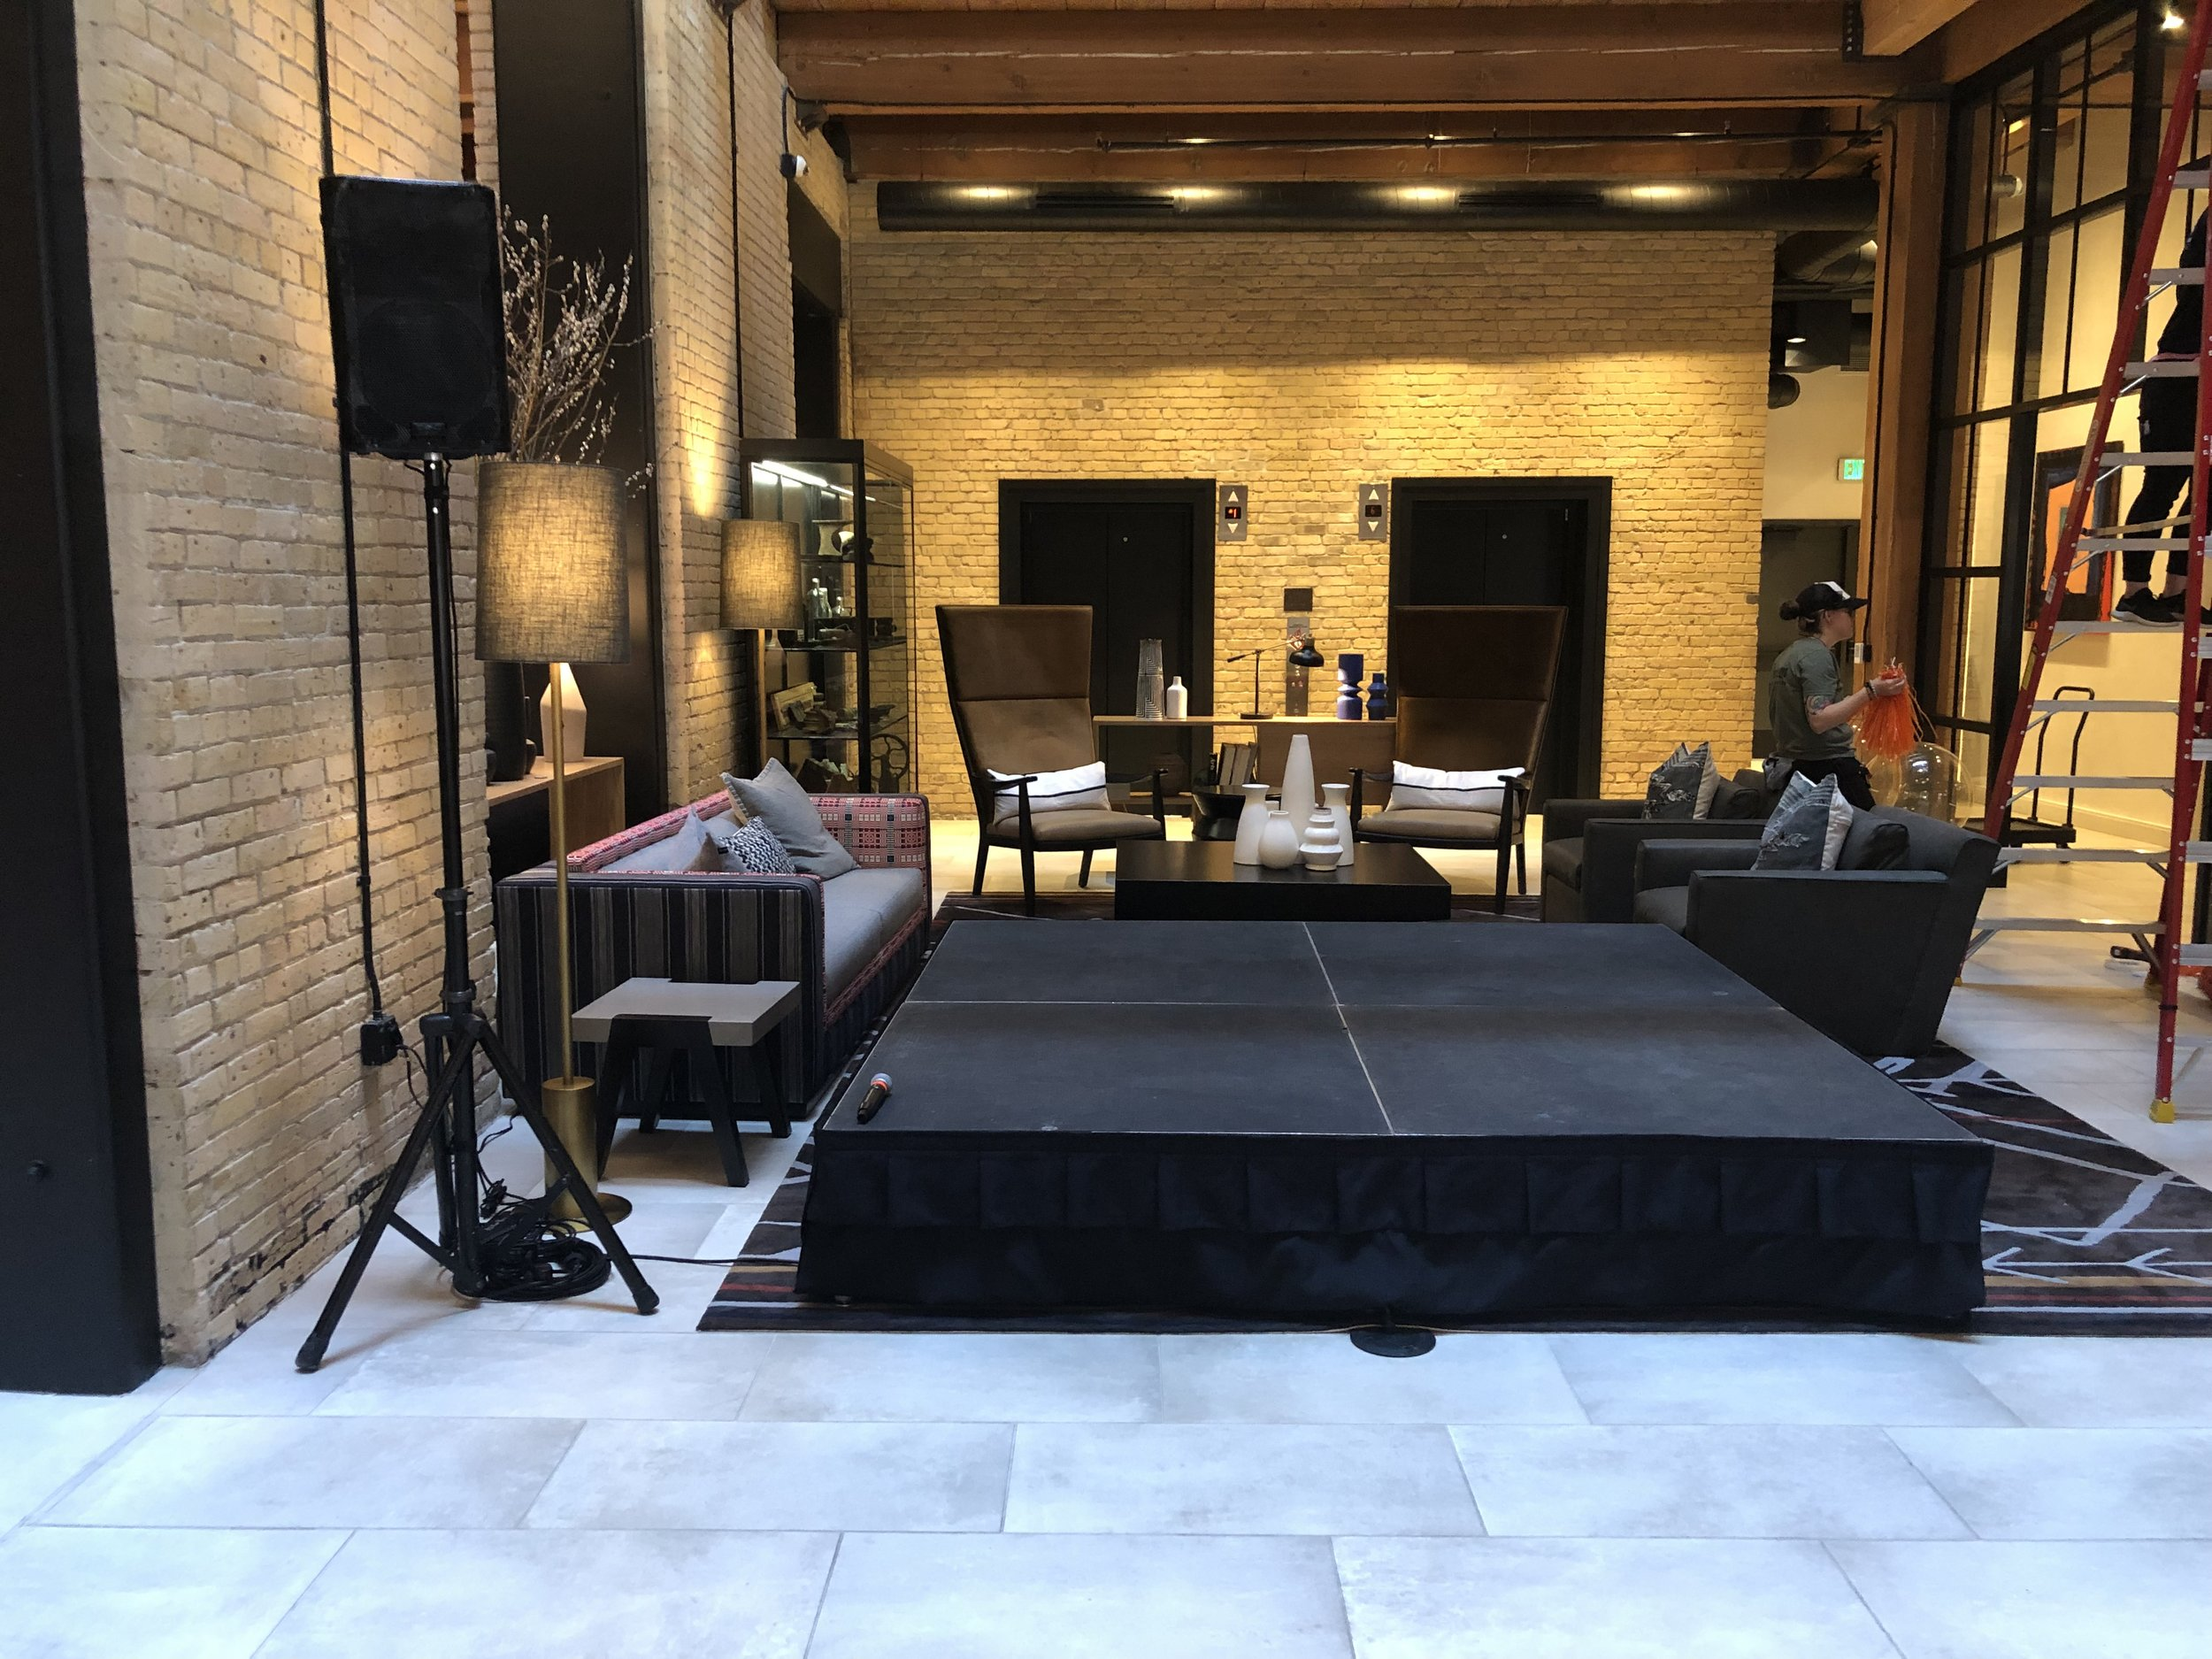 Picture of AV for You Rental Equipment at the Canopy Hotel in Minneapolis